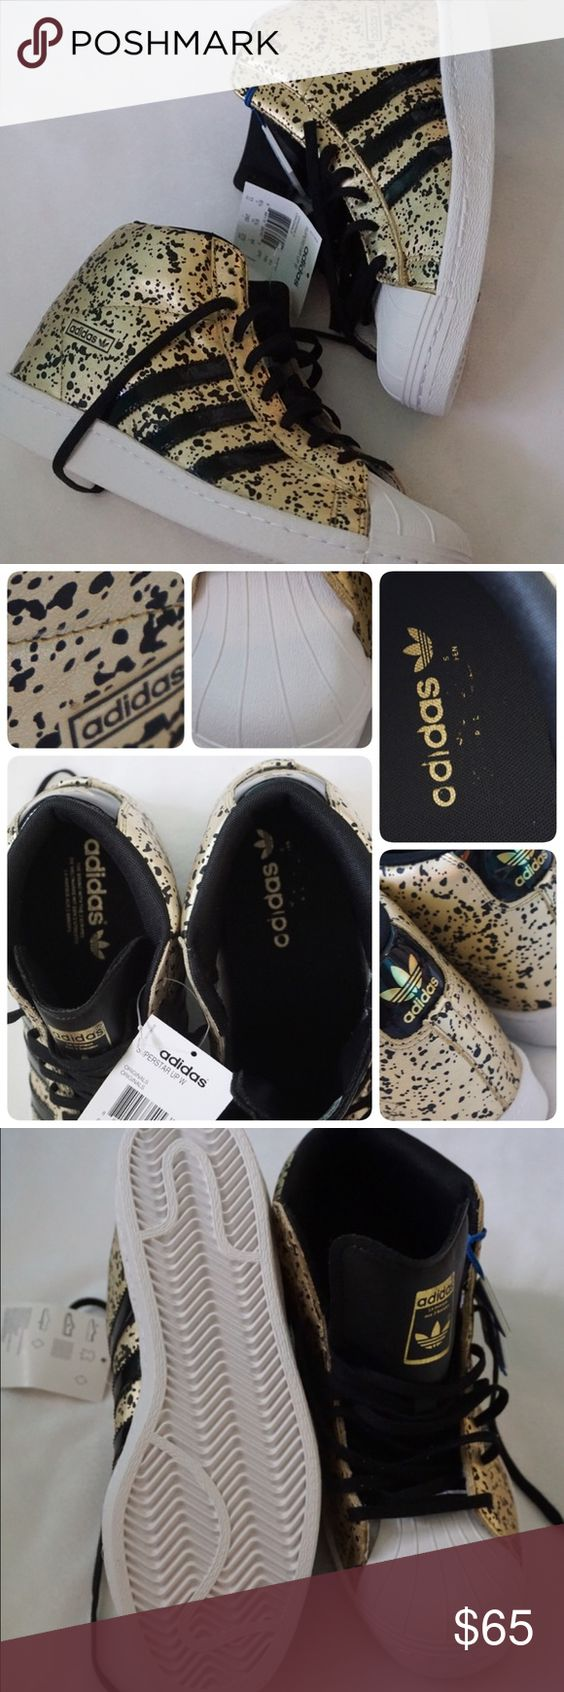 LISTING ADIDAS SUPERSTAR UP W SIZE 11WMN -BRAND NEW IN BOX NO LID -SIZE: 11 WOMEN -COLOR: BLACK/WHITE/GOLD -MADE IN INDONESIA -INCLUDE ORIGINAL BOX WHEN SHIP NO LID ⚠️⚠️⚠️⚠️PAY ATTENTION TO THE INTERIOR OF THE SHOES ⚠️⚠️⚠️⚠️⚠️ ⚠️⚠️⚠️PLEASE UNDERSTAND SOMETIME THE BOX POSSIBLY DAMAGED. IF YOU CONCERNED ABOUT THE BOX PLEASE ASK FIRST BEFORE PURCHASE. PLEASE PAY ATTENTION TO DETAILED OF SHOES OF THE PIC. THANKS ⚠️⚠️⚠️⚠️⚠️       ⭐️TOP RATED SELLER FAST SHIPPER NEXT DAY SHIPPING ❌NO TRADE ❌NO…